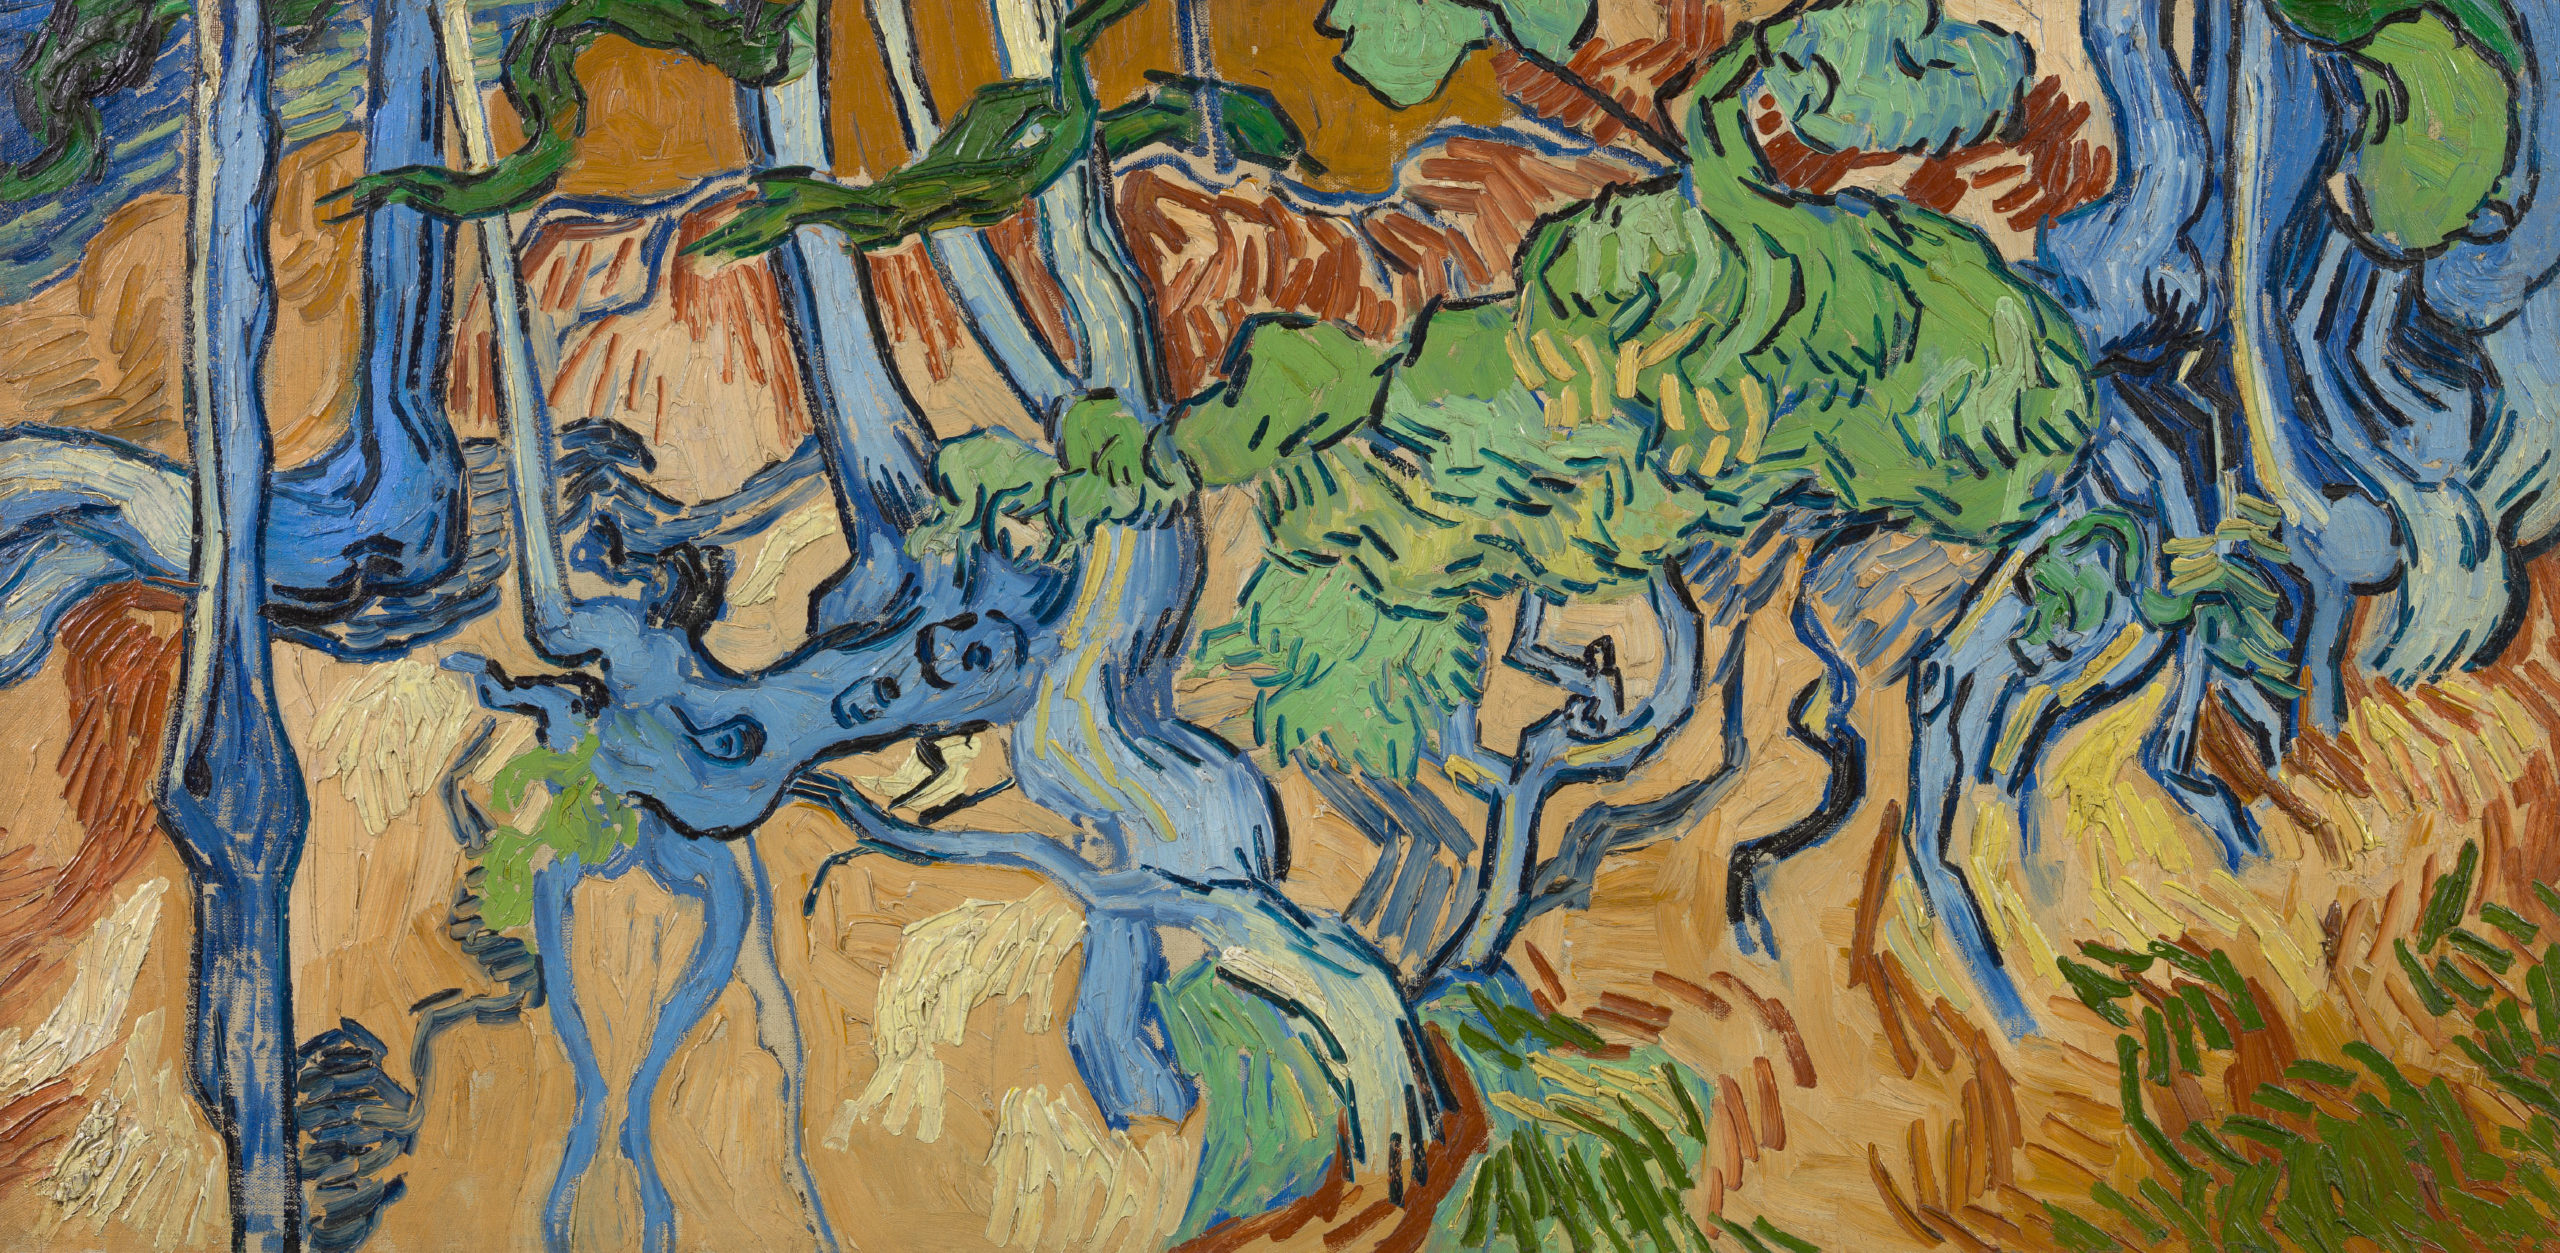 Discovered: The Place Vincent Van Gogh Painted his Last Masterpiece